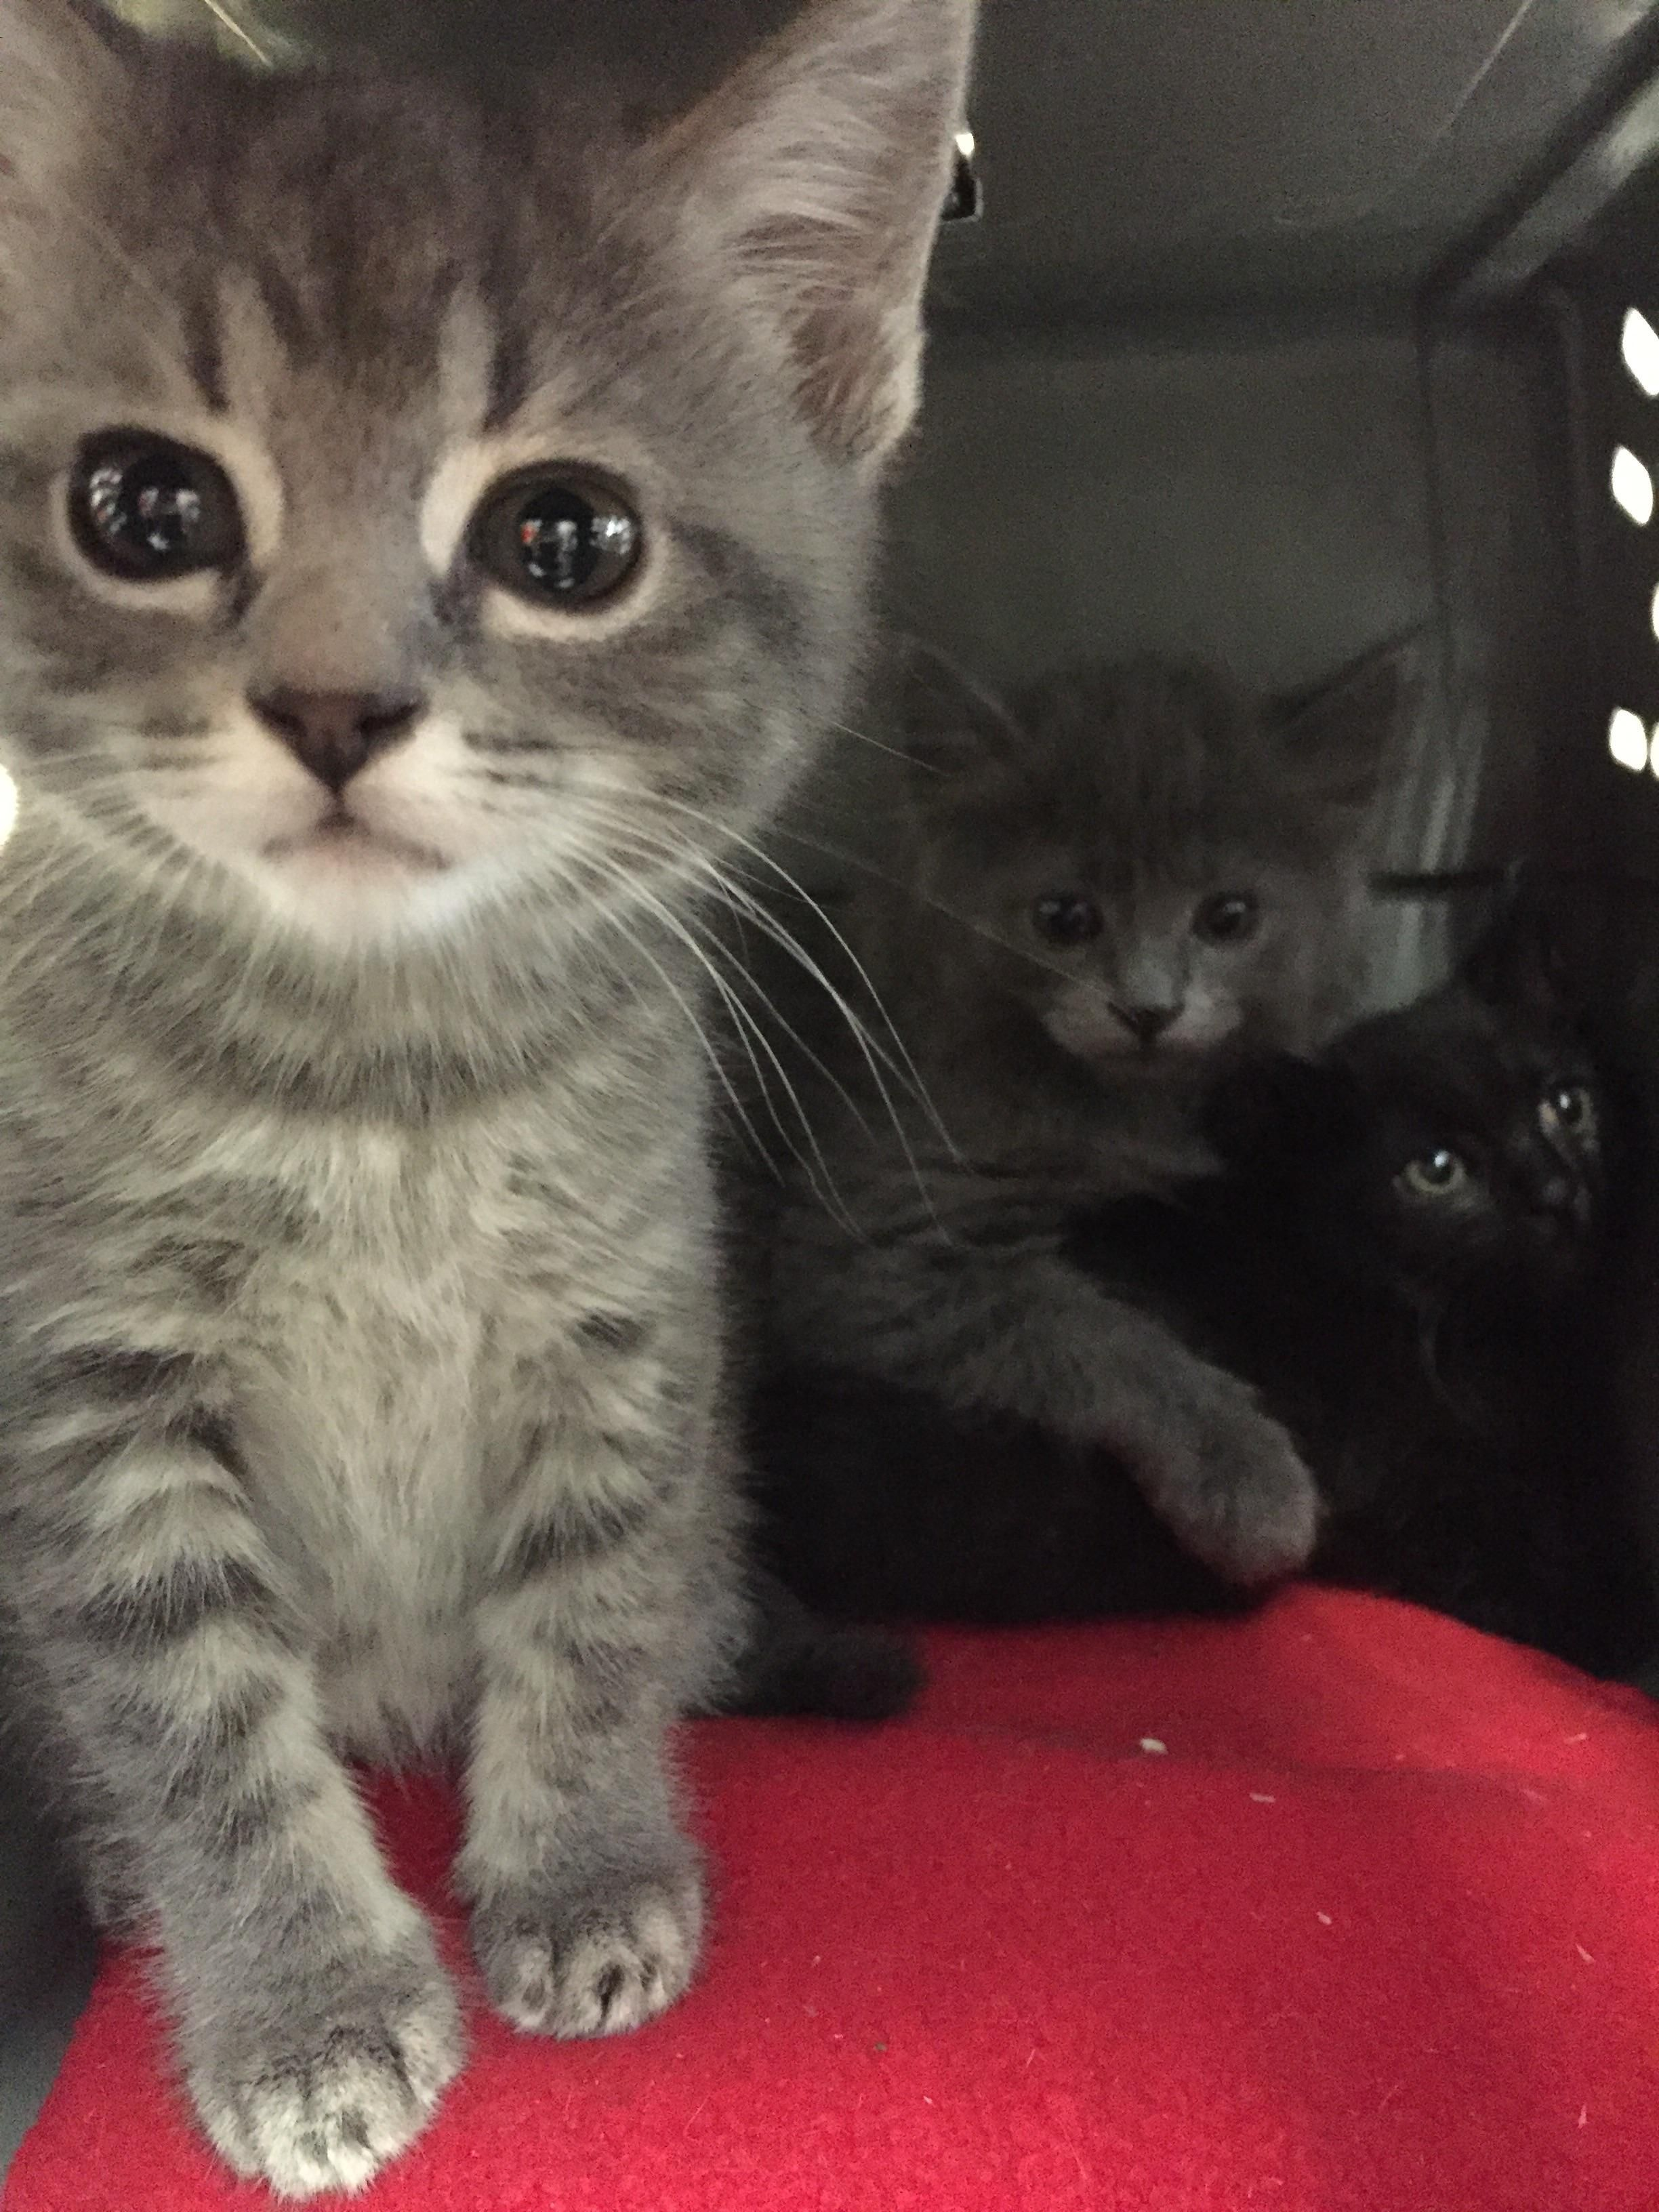 Pin By Cyndi Spehar On Adorable Cats N Kittens Kittens Cutest Foster Kittens Kittens